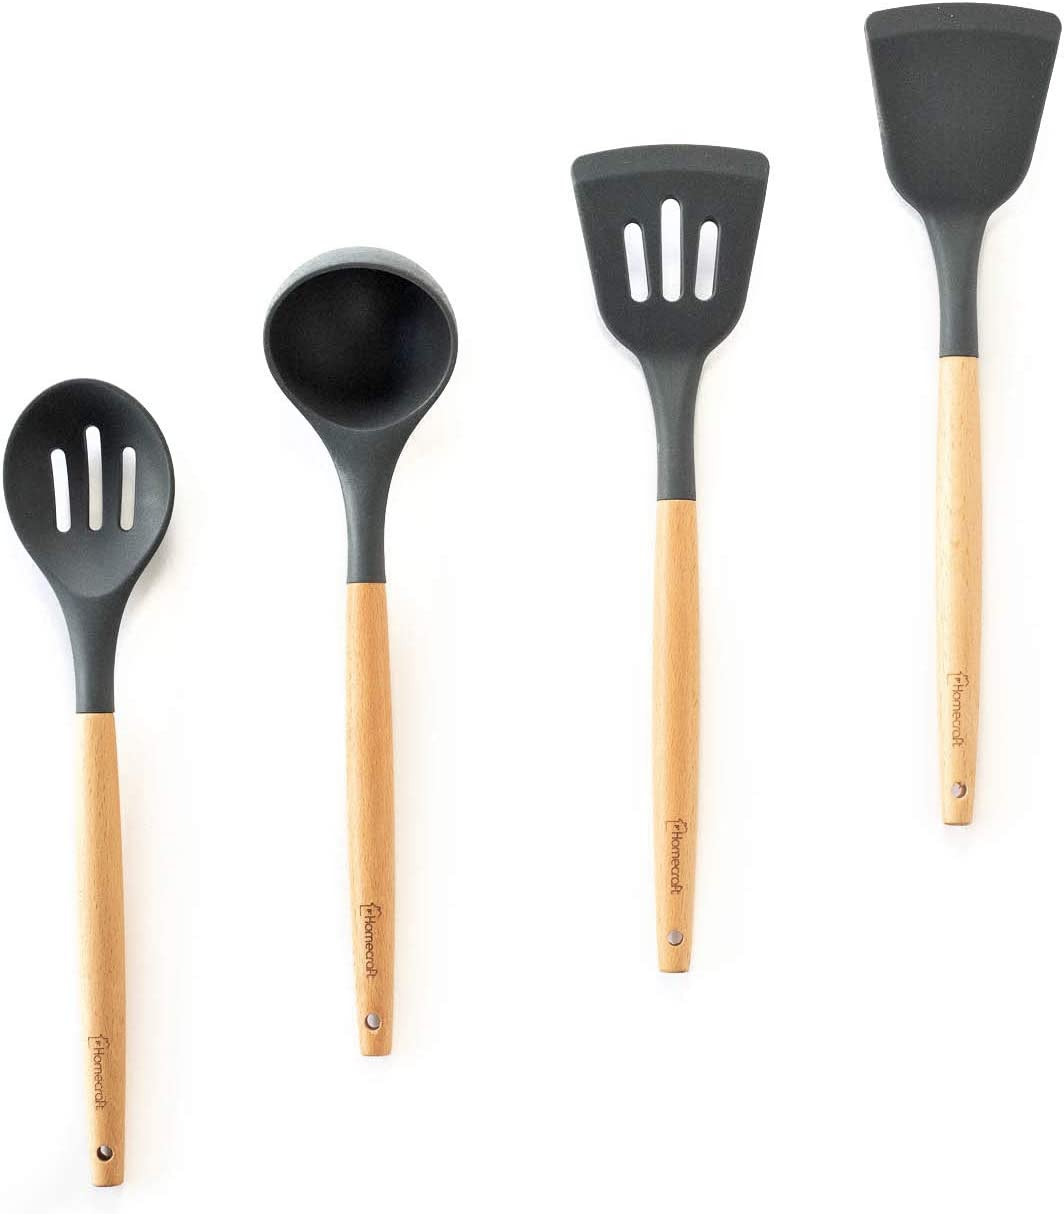 Homecraft Spatula and Spoon Cooking Utensil Set - Heat Resistant, Non-Stick, Silicone Kitchen Utensils with Solid Beechwood Handles - Spatulas, Slotted Spoon, Ladle - 4 Piece (Grey)